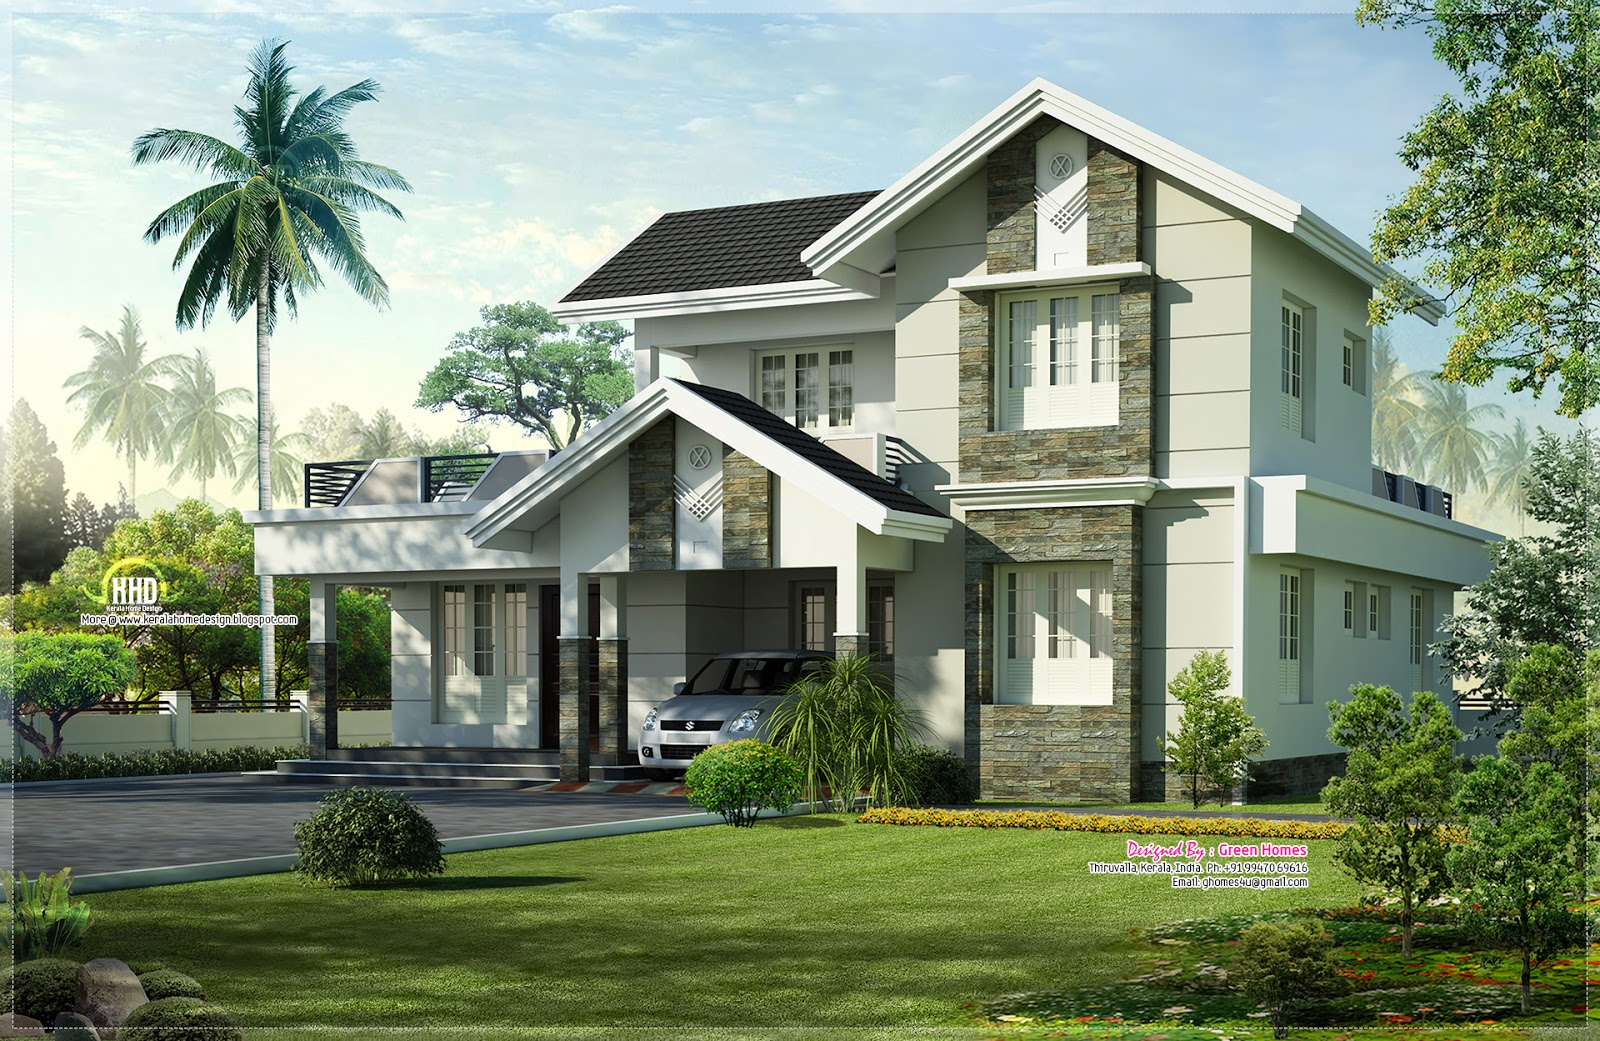 1975 nice home exterior design home kerala plans for Home designs exterior